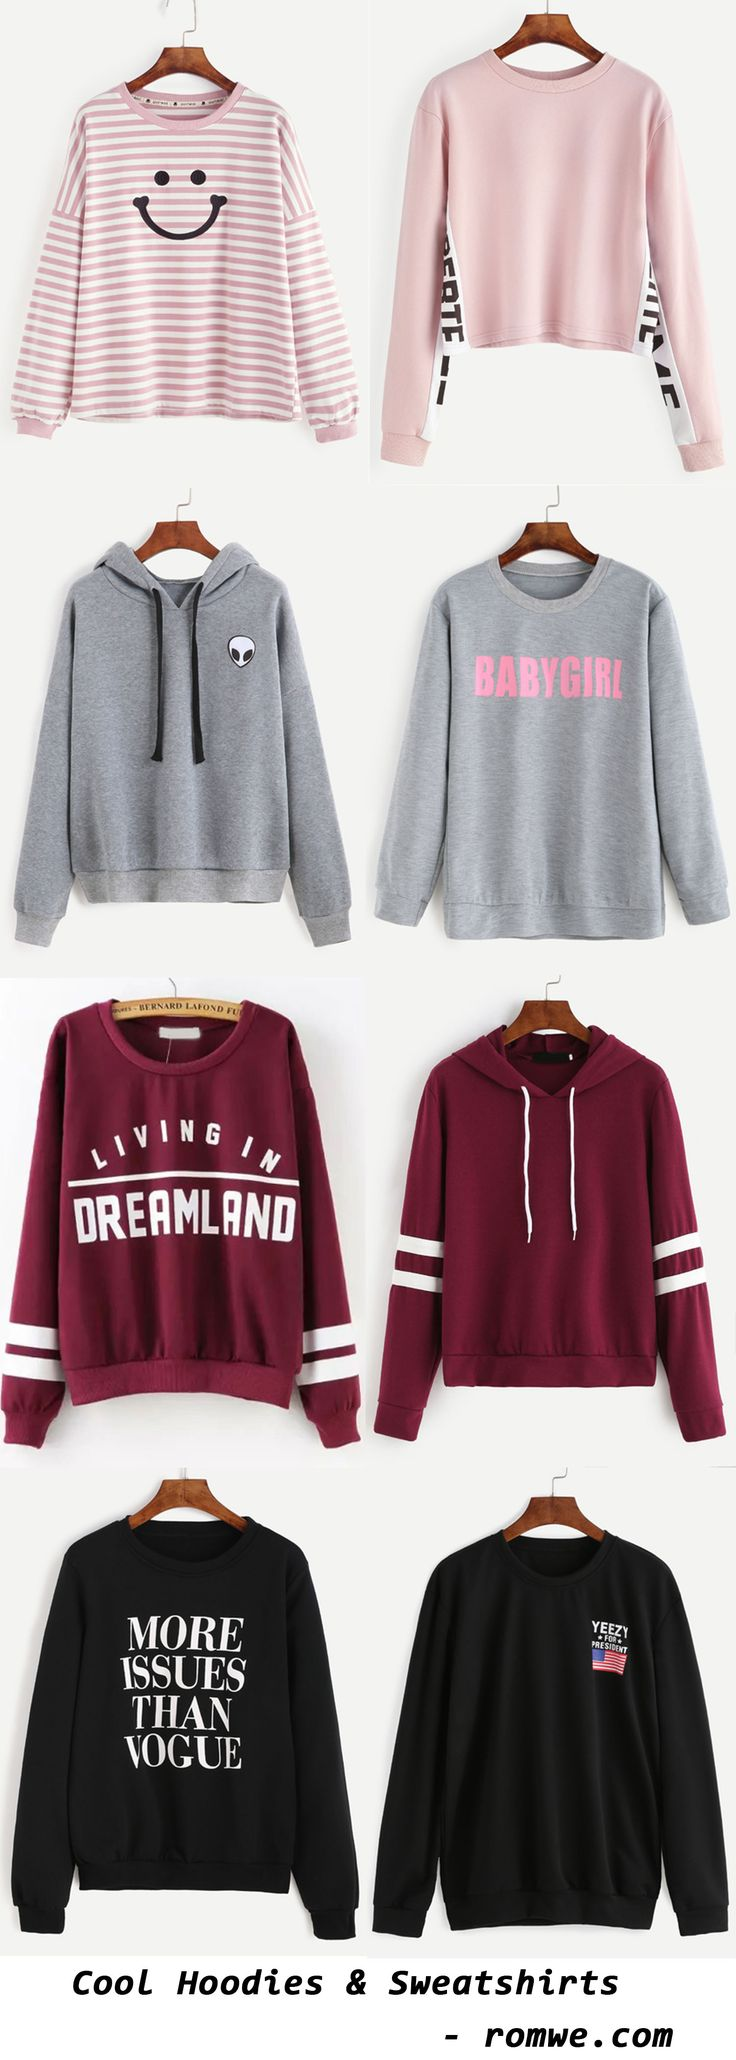 Cool Sweatshirts & Hoodies - romwe.com